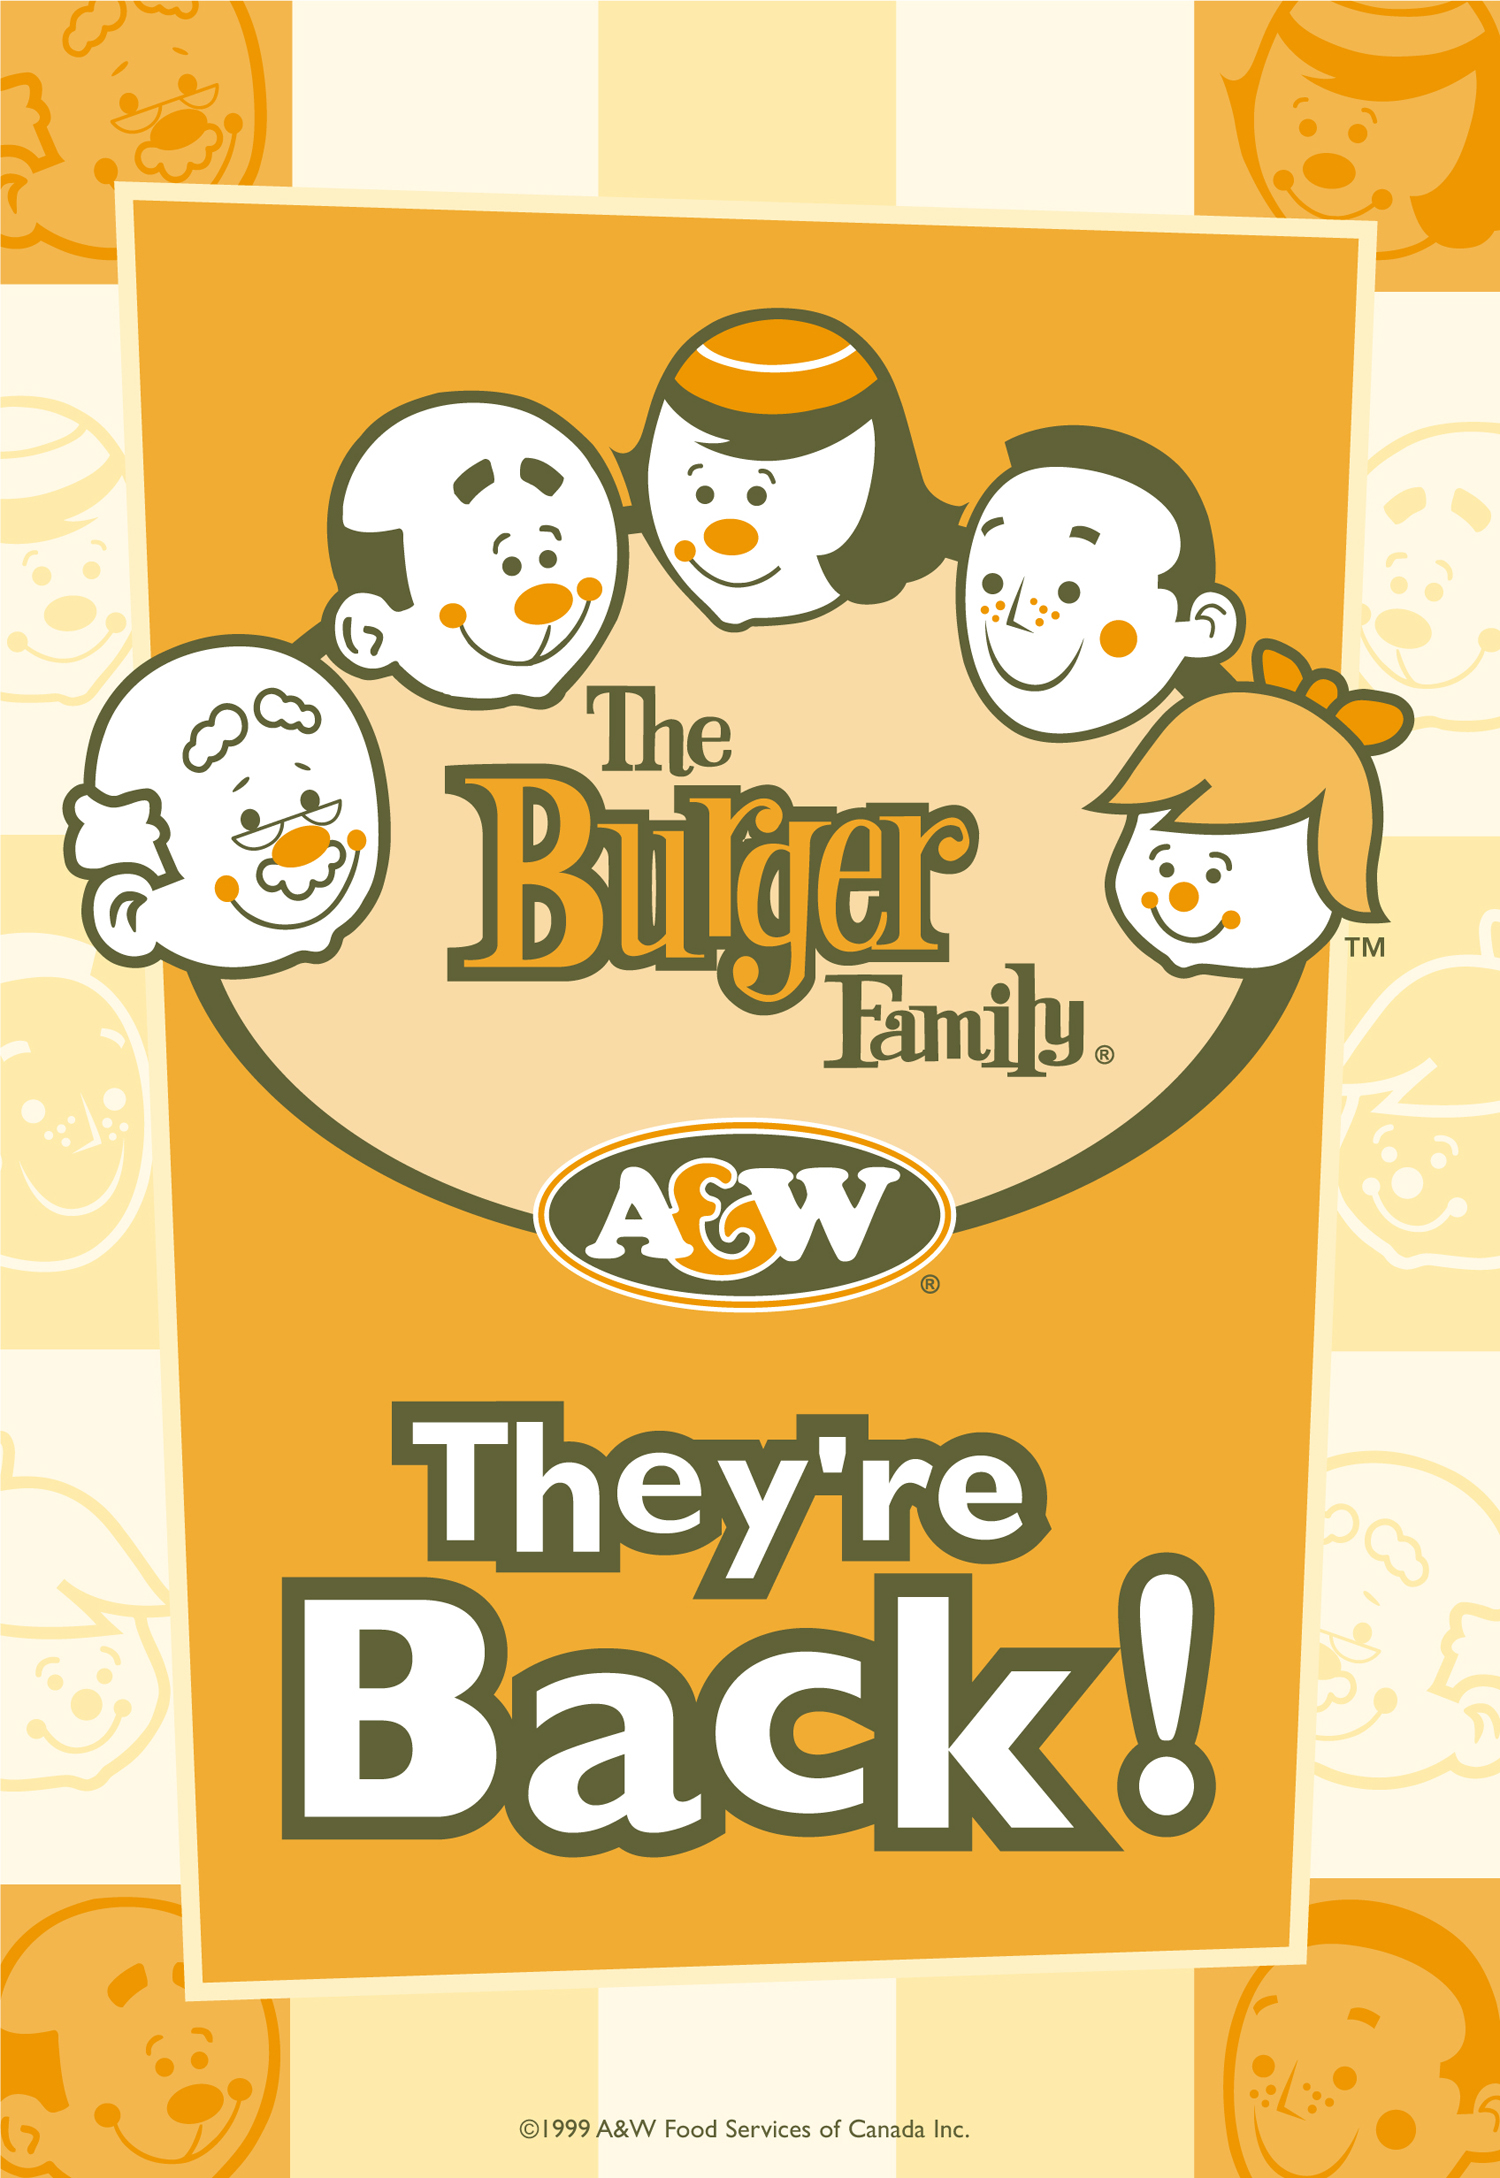 A&W Burger Family Relaunch Window Poster 52 x 73